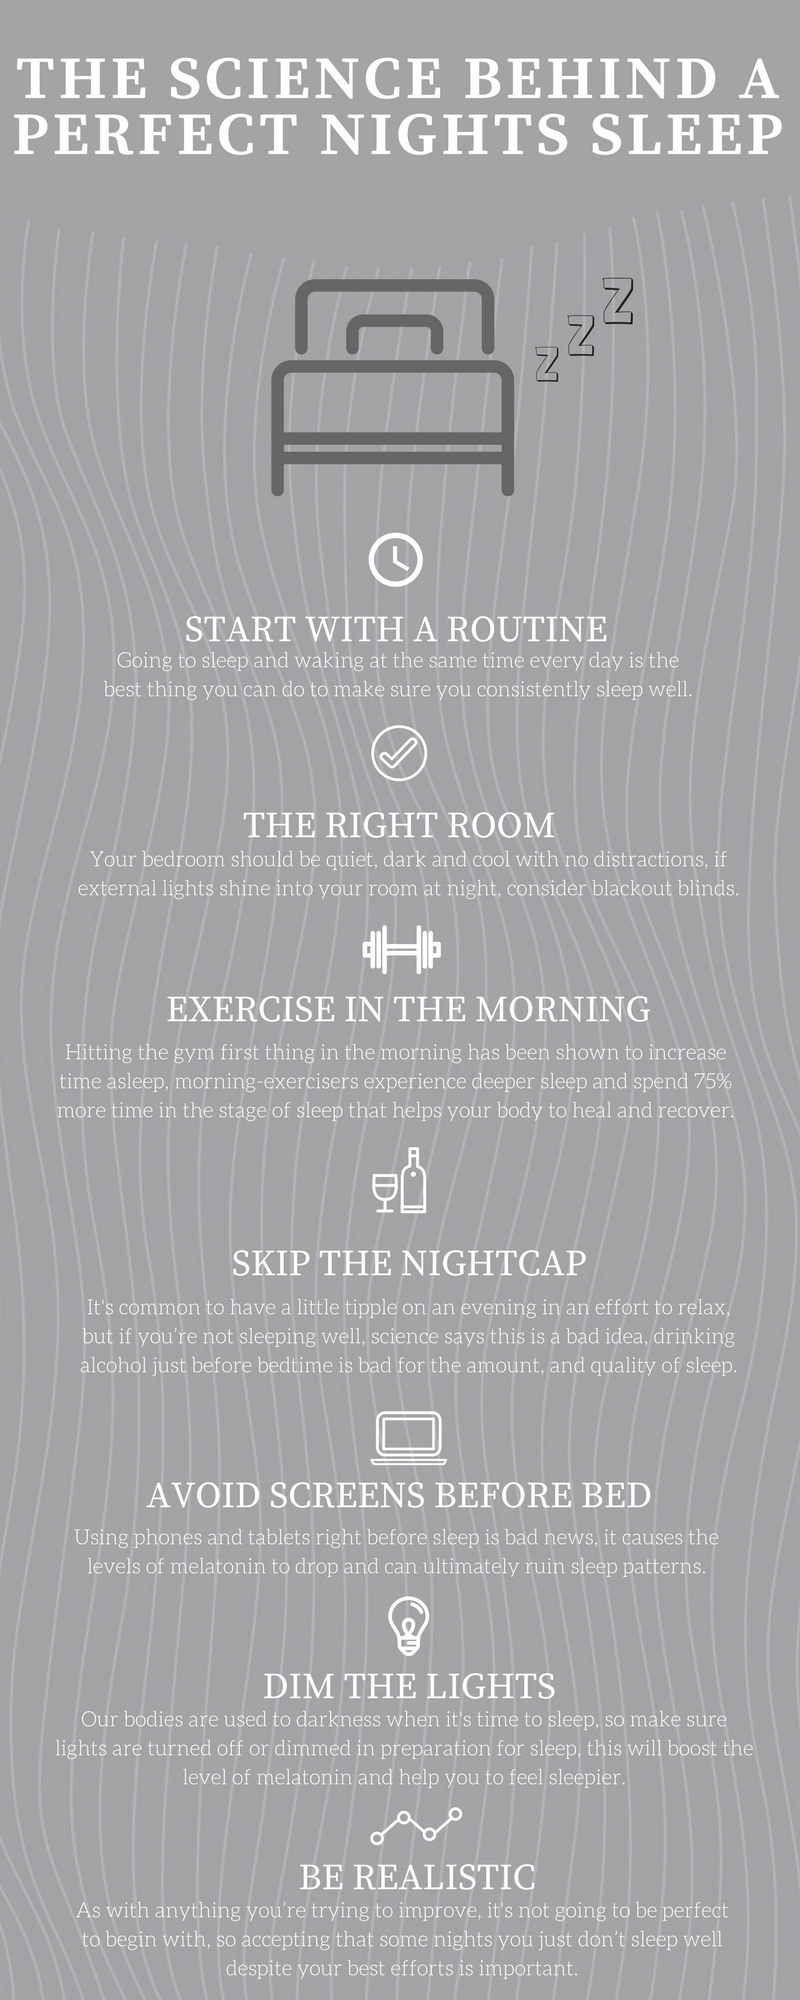 Perfect Nights Sleep Infographic